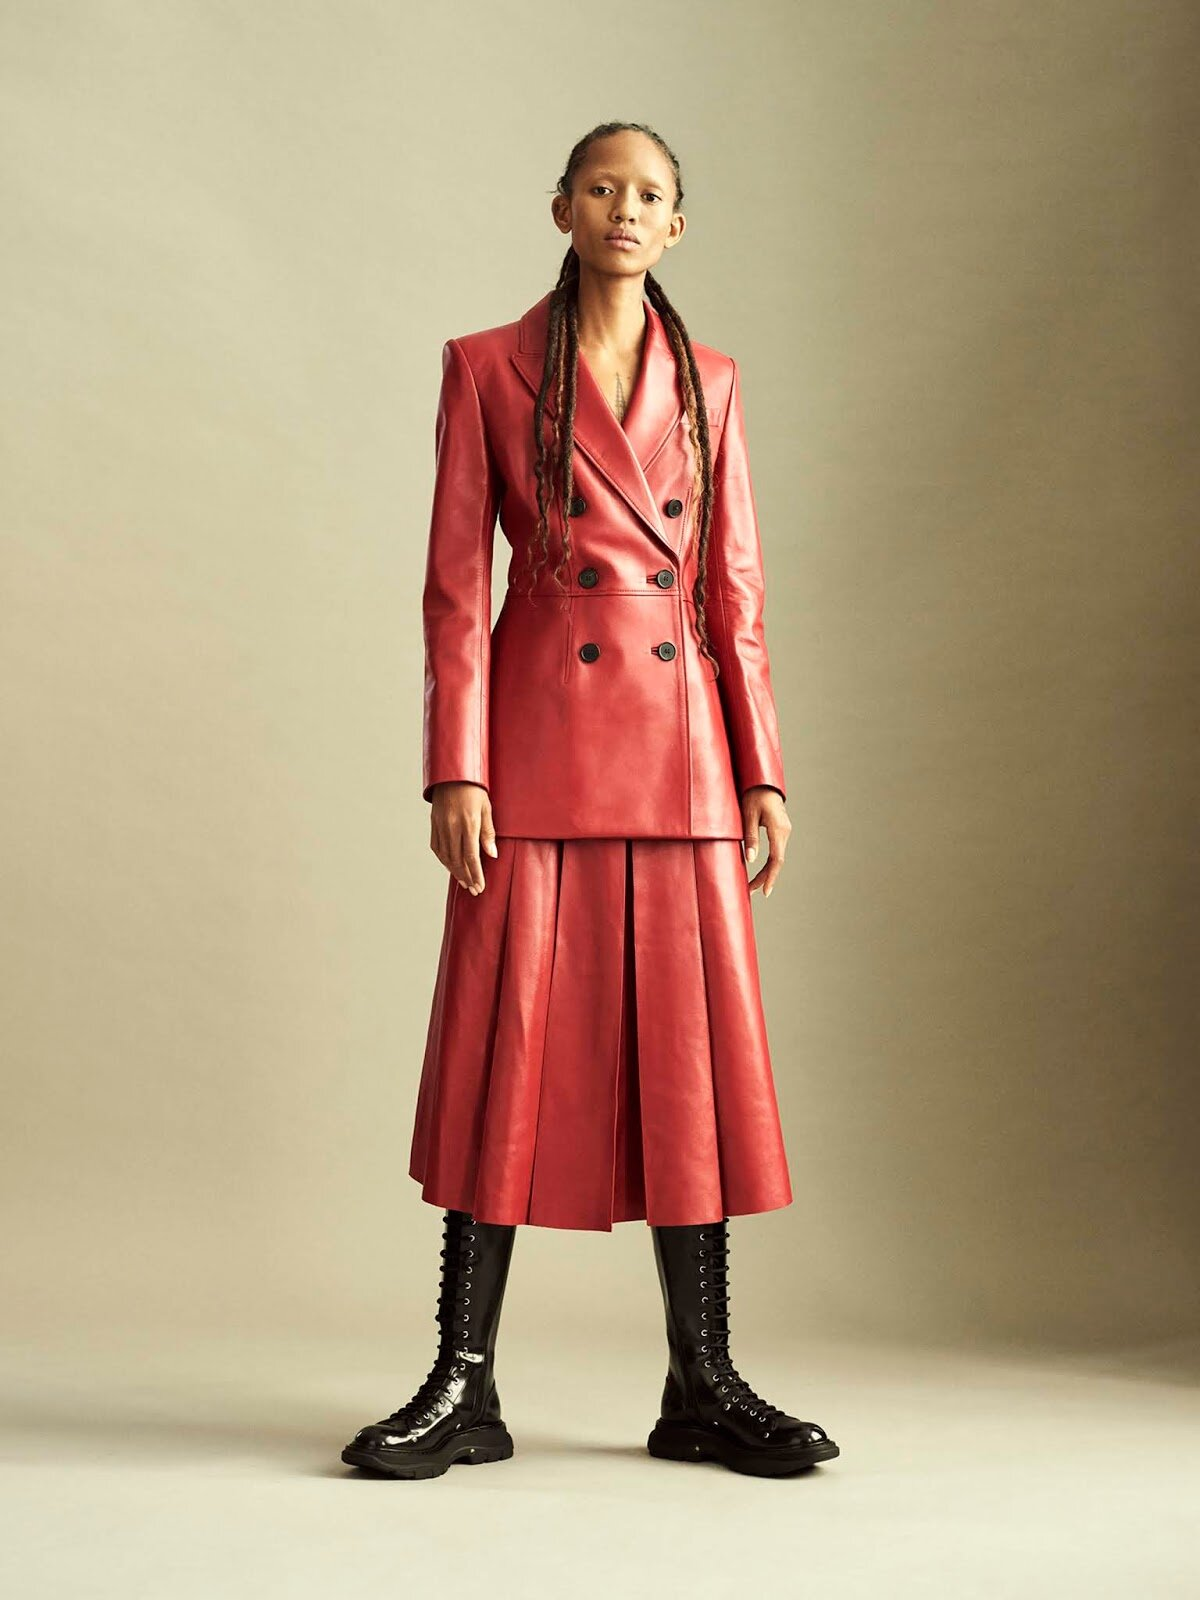 Subverting the timeless jacket-and-pleated-skirt combination by rendering it in bold scarlet leather, Alexander McQueen's Sarah Burton lends a punkish spirit to classic workwear.  Jacket, skirt, and boots, all Alexander McQueen.  Adesuwa Aighewi by Philip Messmann.